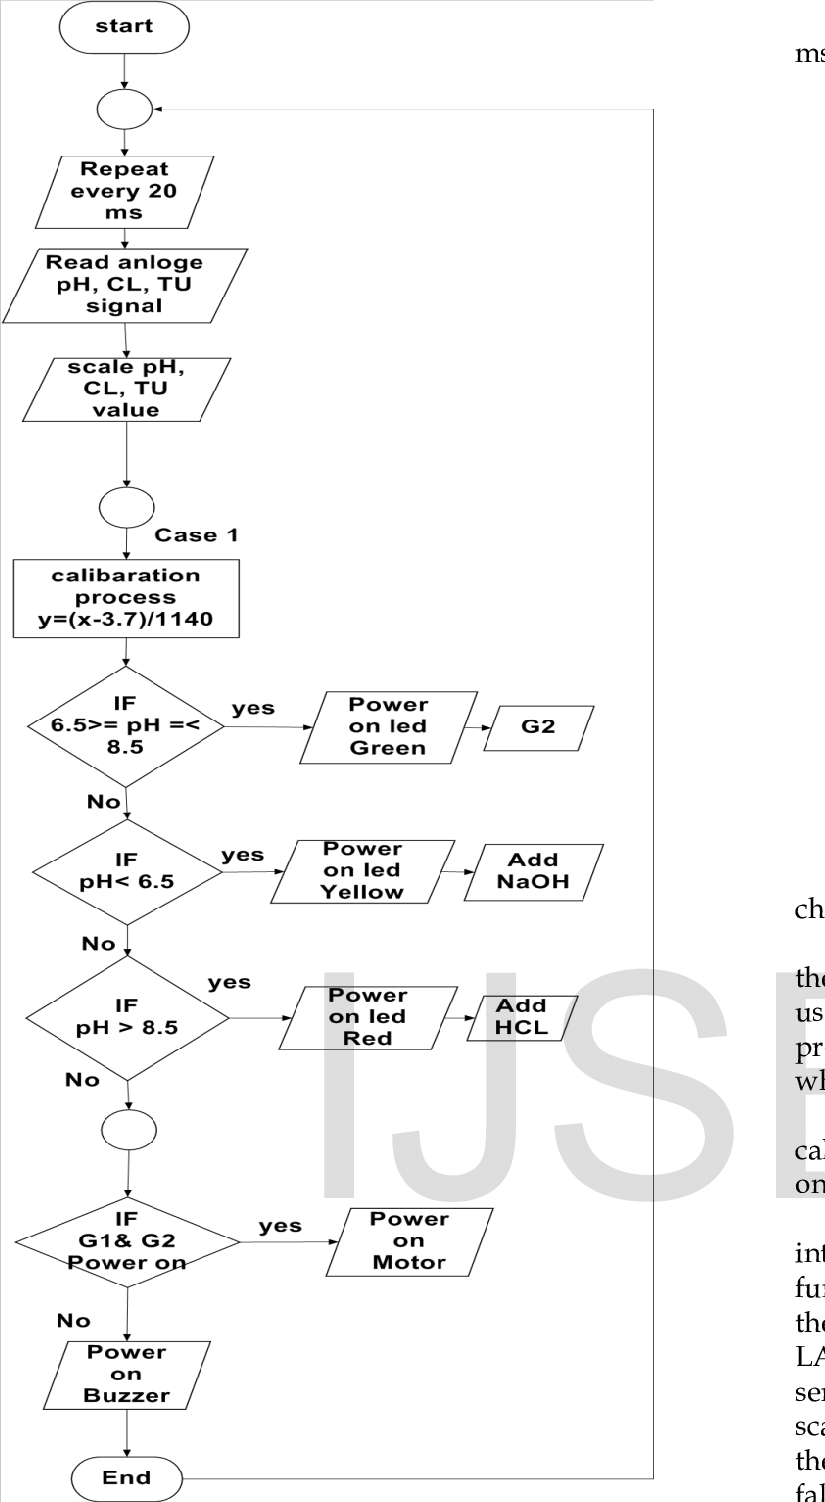 hight resolution of case one from flow chart of the ladder logic diagram